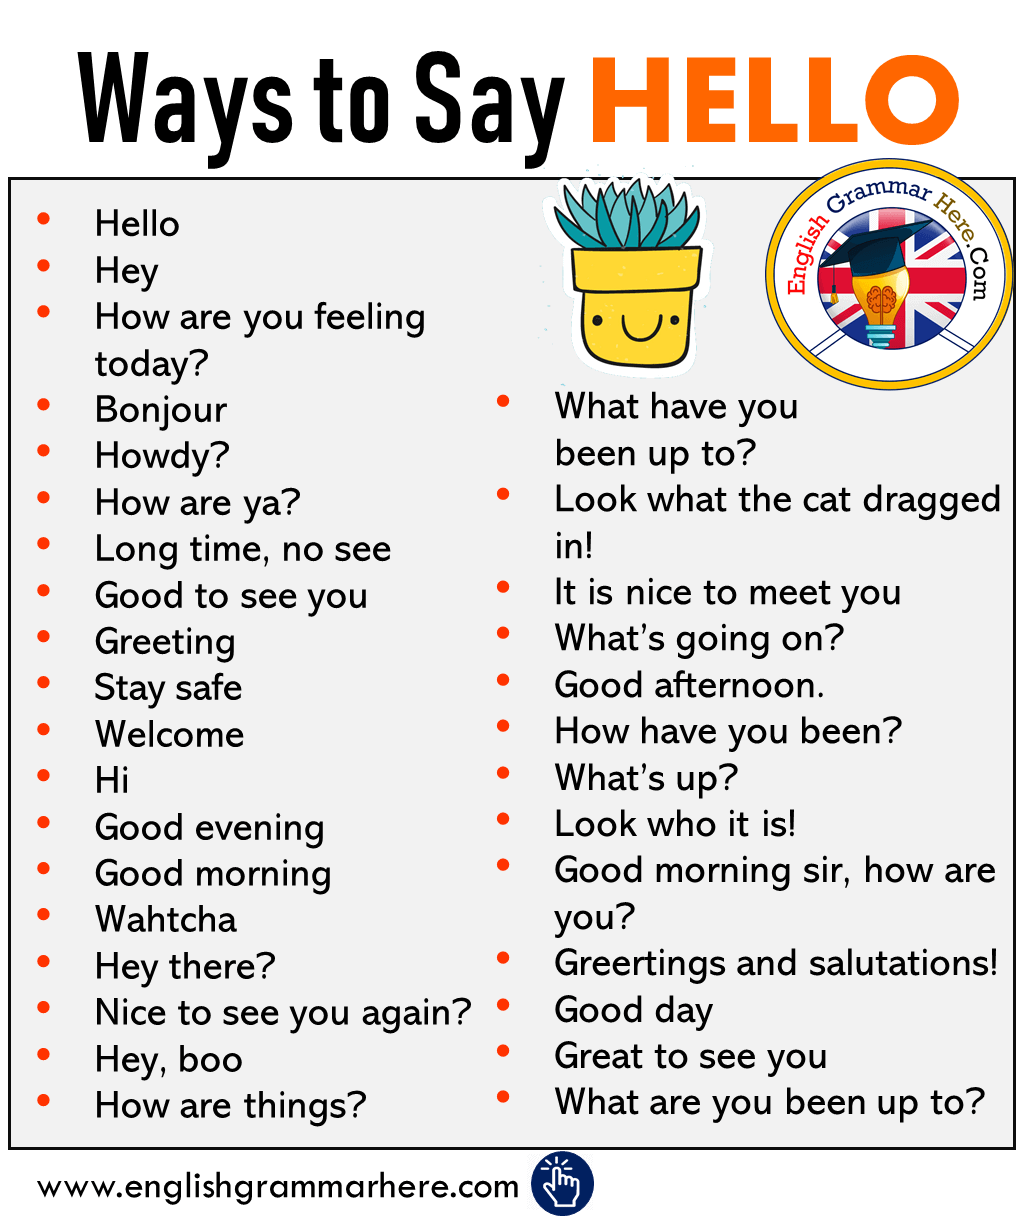 Different Ways To Say HELLO, Speaking Tips